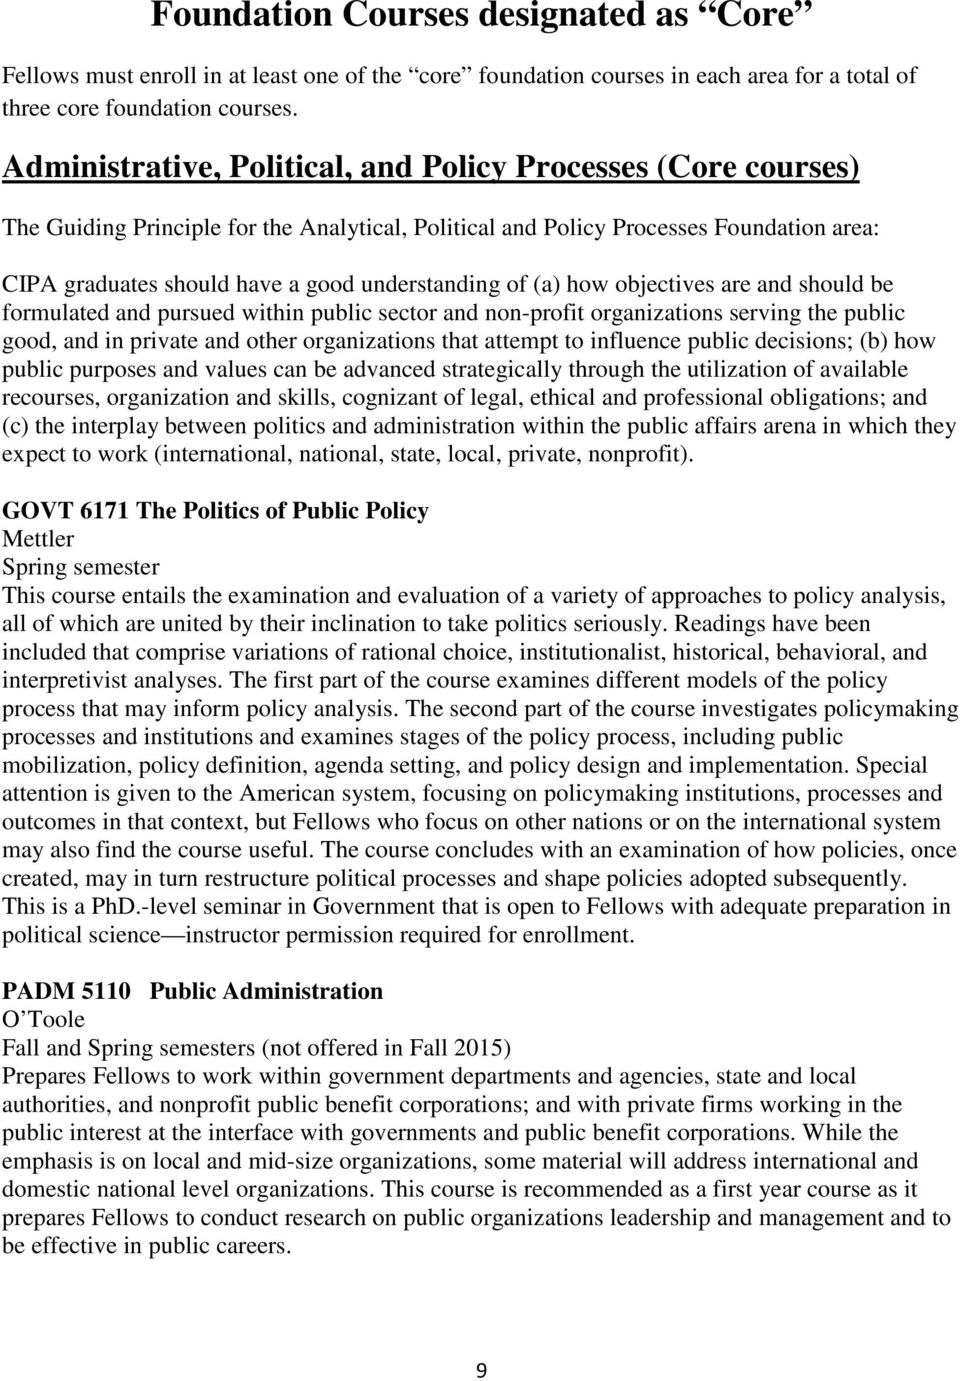 understanding of (a) how objectives are and should be formulated and pursued within public sector and non-profit organizations serving the public good, and in private and other organizations that